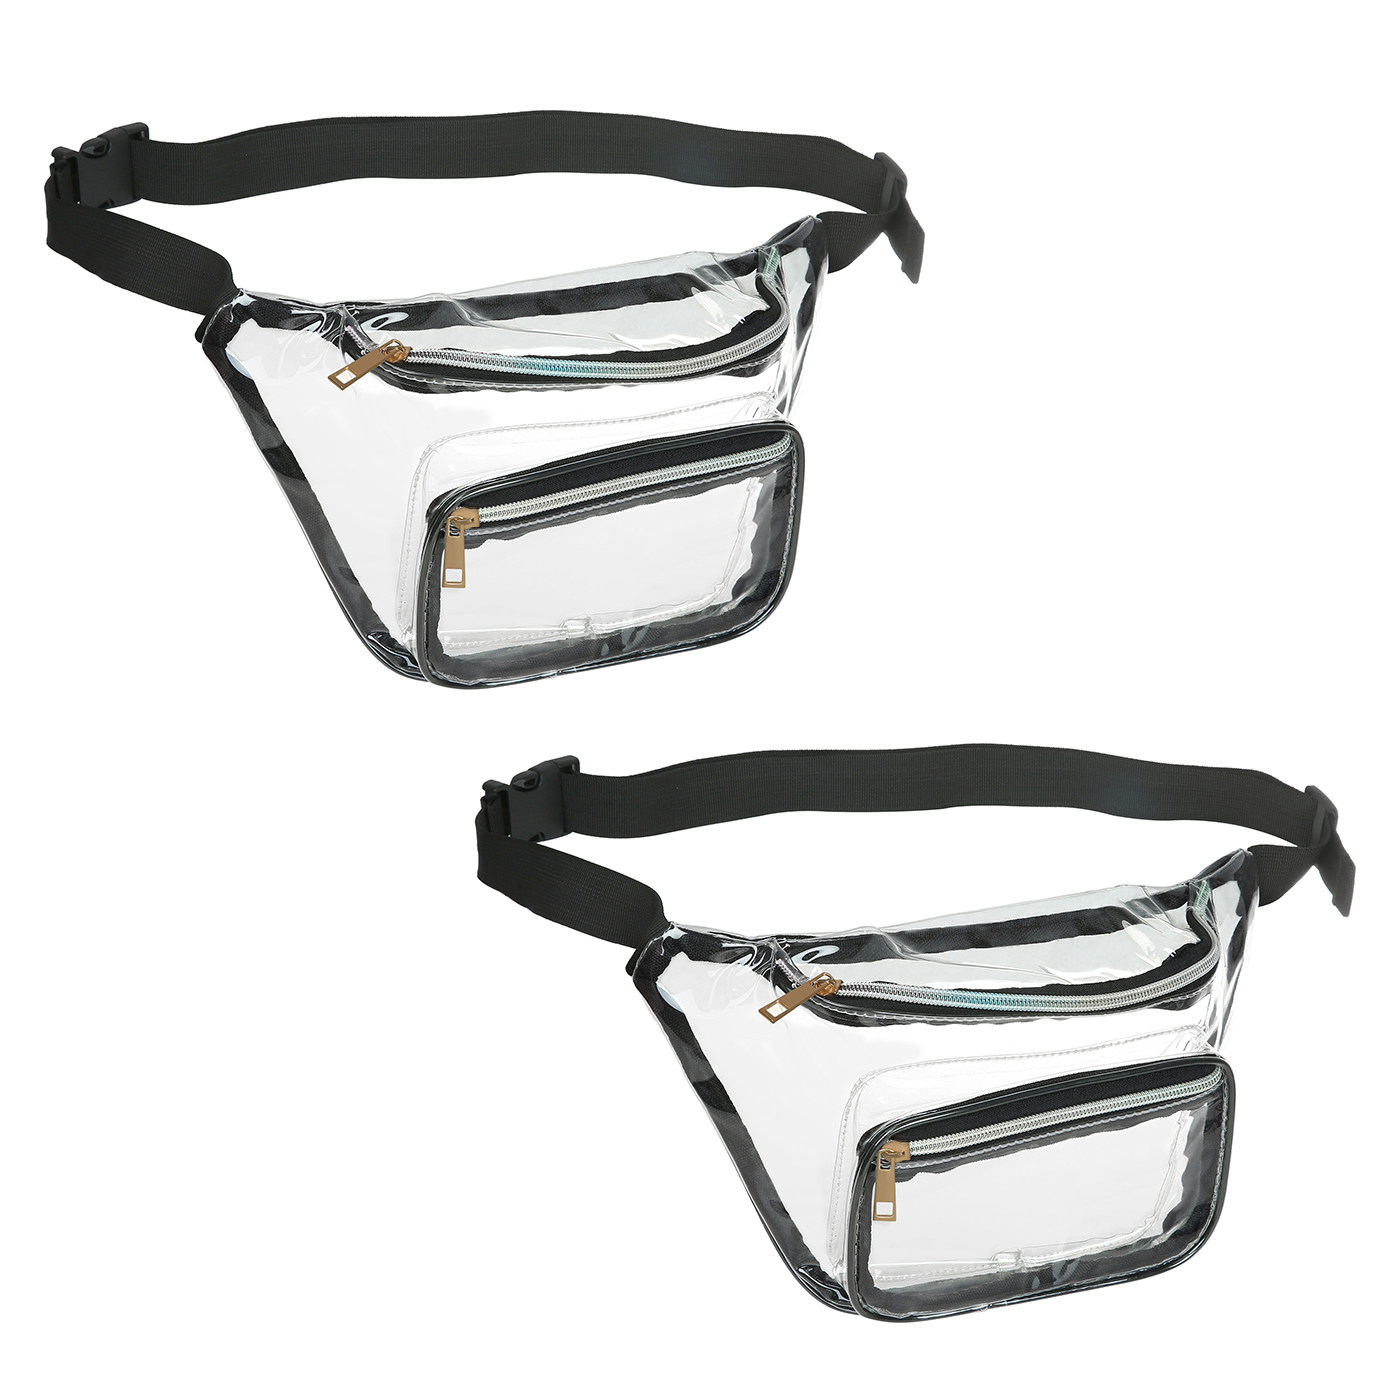 Ask Me About My Ninja Disguise Sport Waist Packs Fanny Pack Adjustable For Run